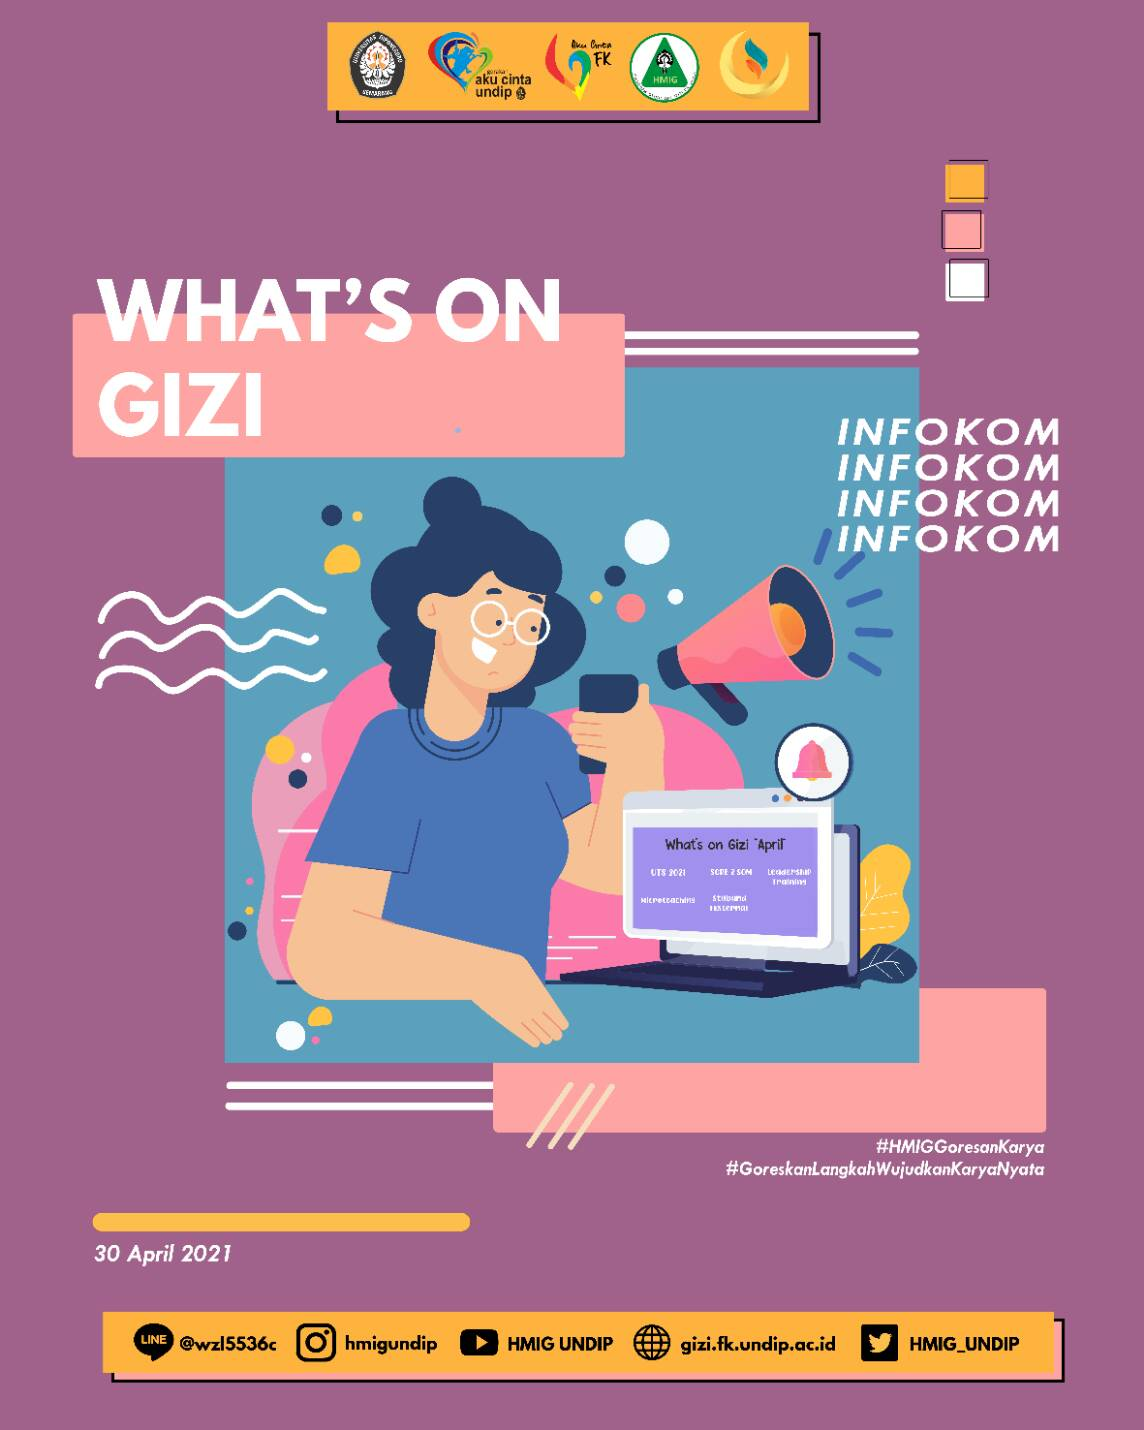 WHAT'S ON GIZI